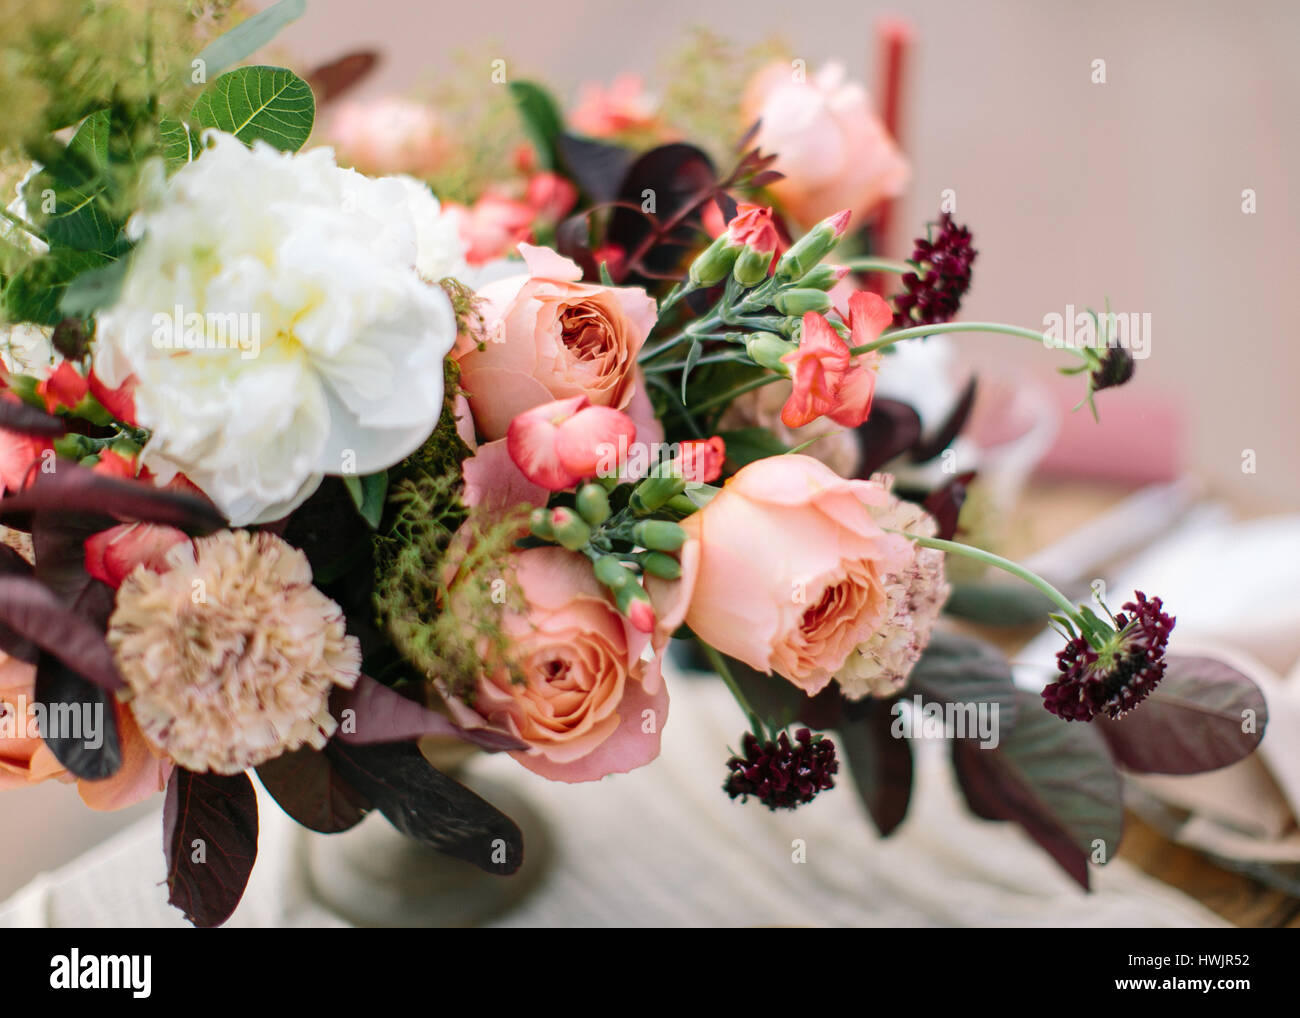 Wedding Flowers Composition In Peach Pink Purple And Claret Tones